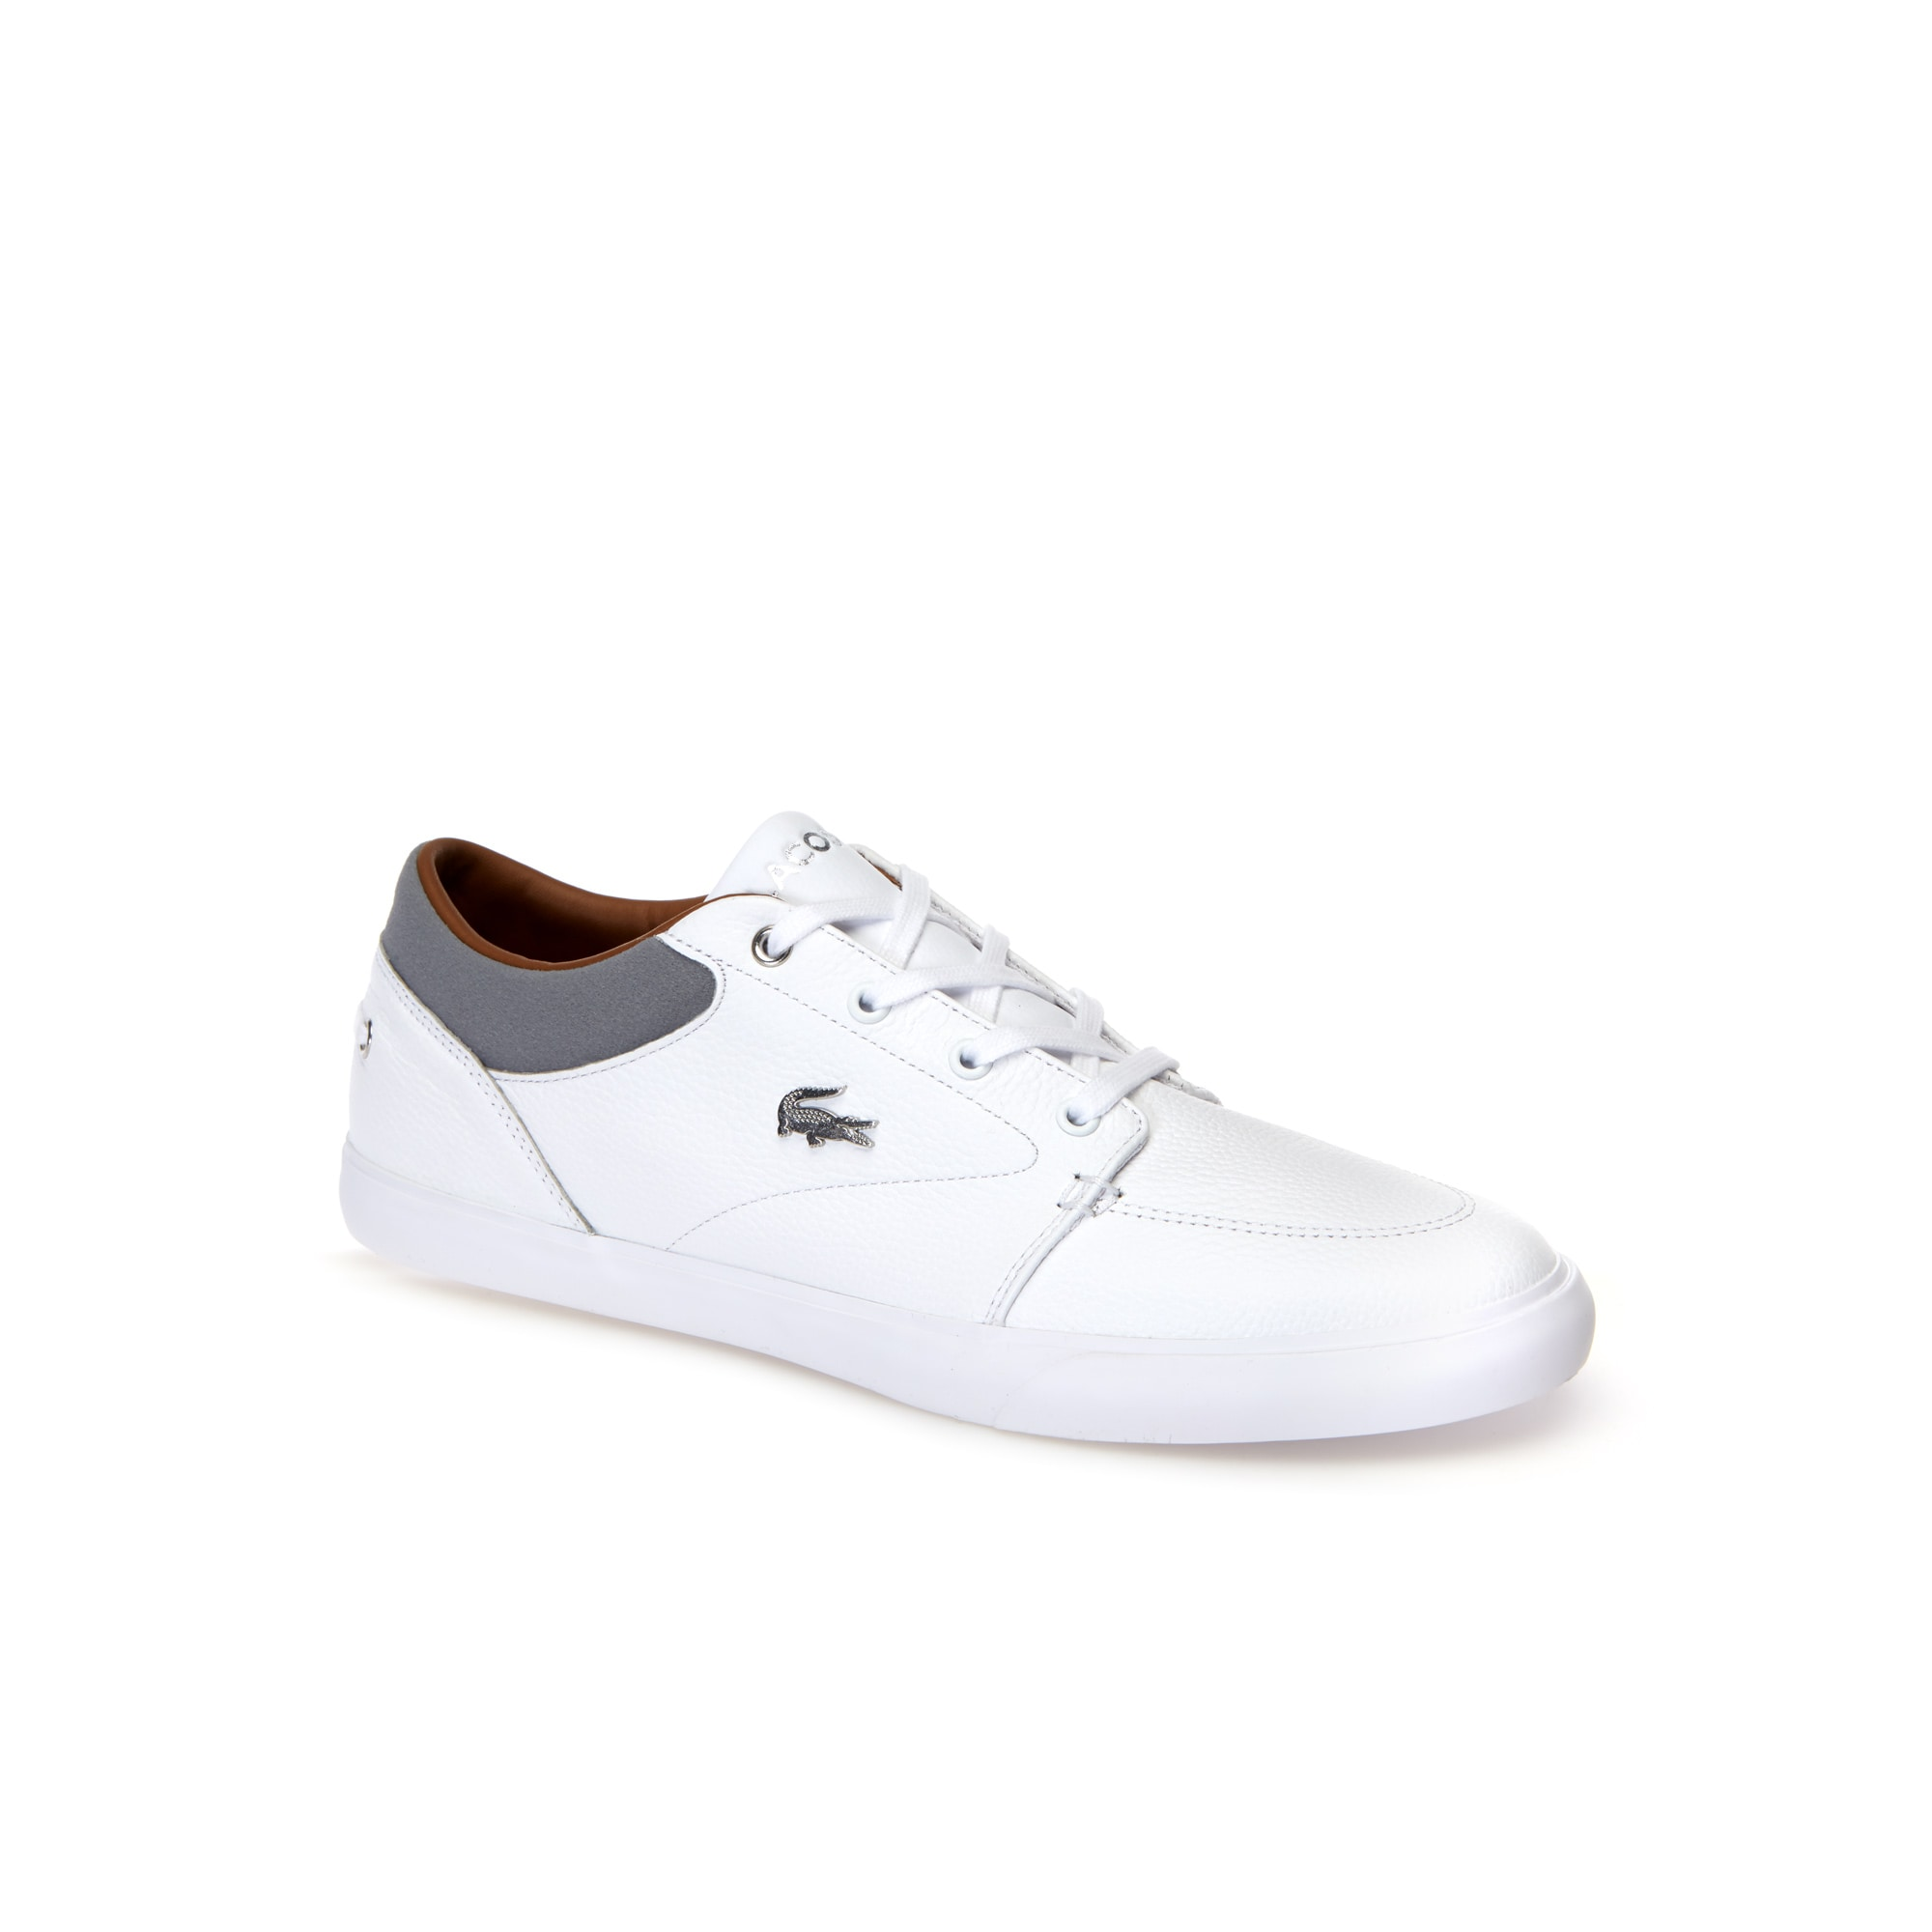 Men's Bayliss Sneaker